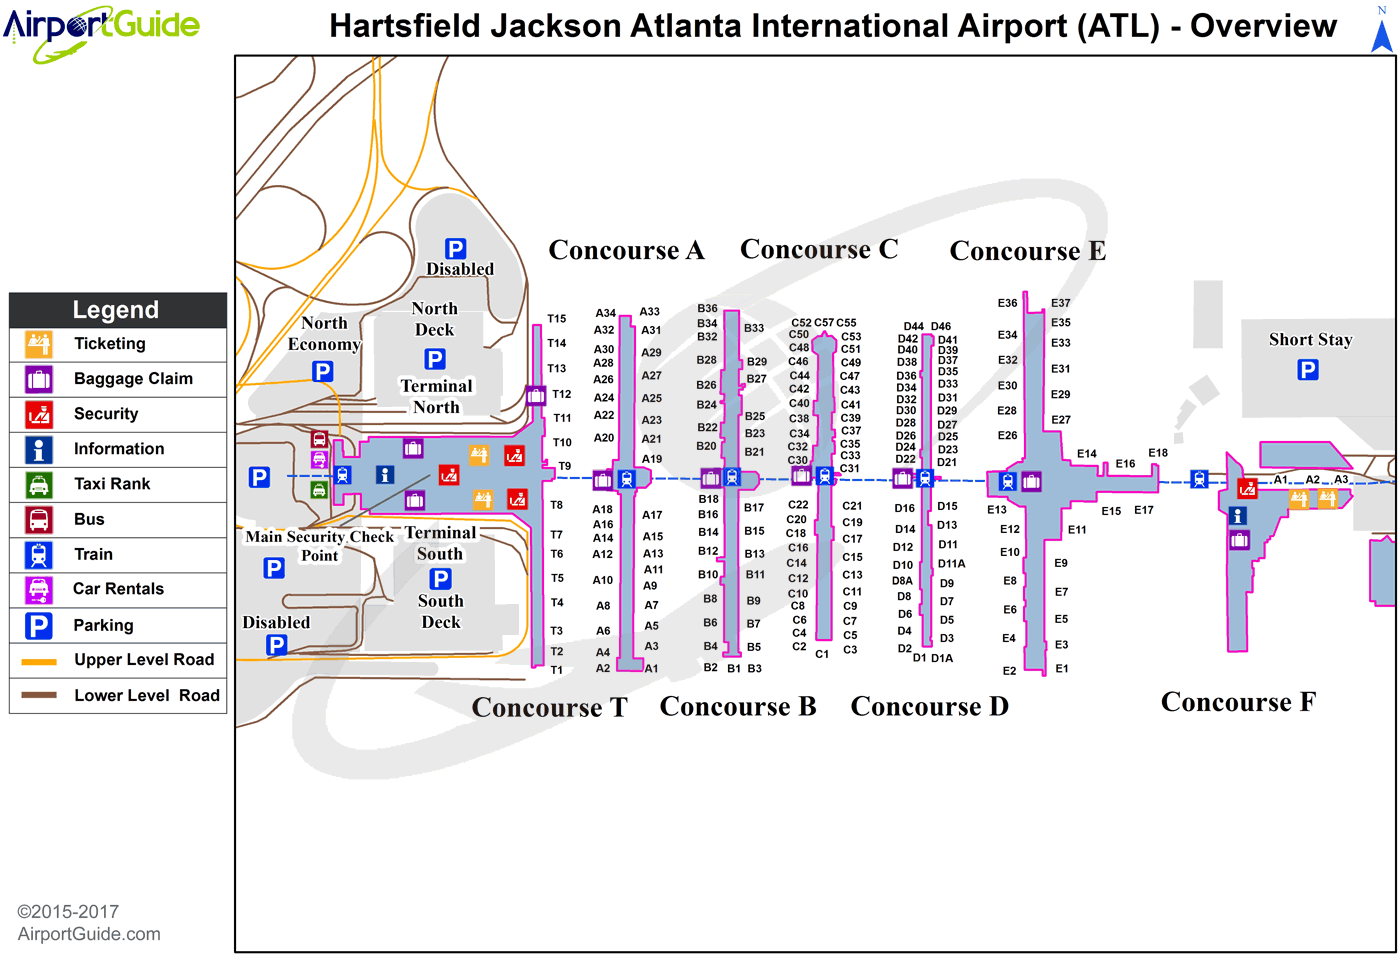 Atlanta - Hartsfield - Jackson Atlanta International (ATL) Airport Terminal Map - Overview